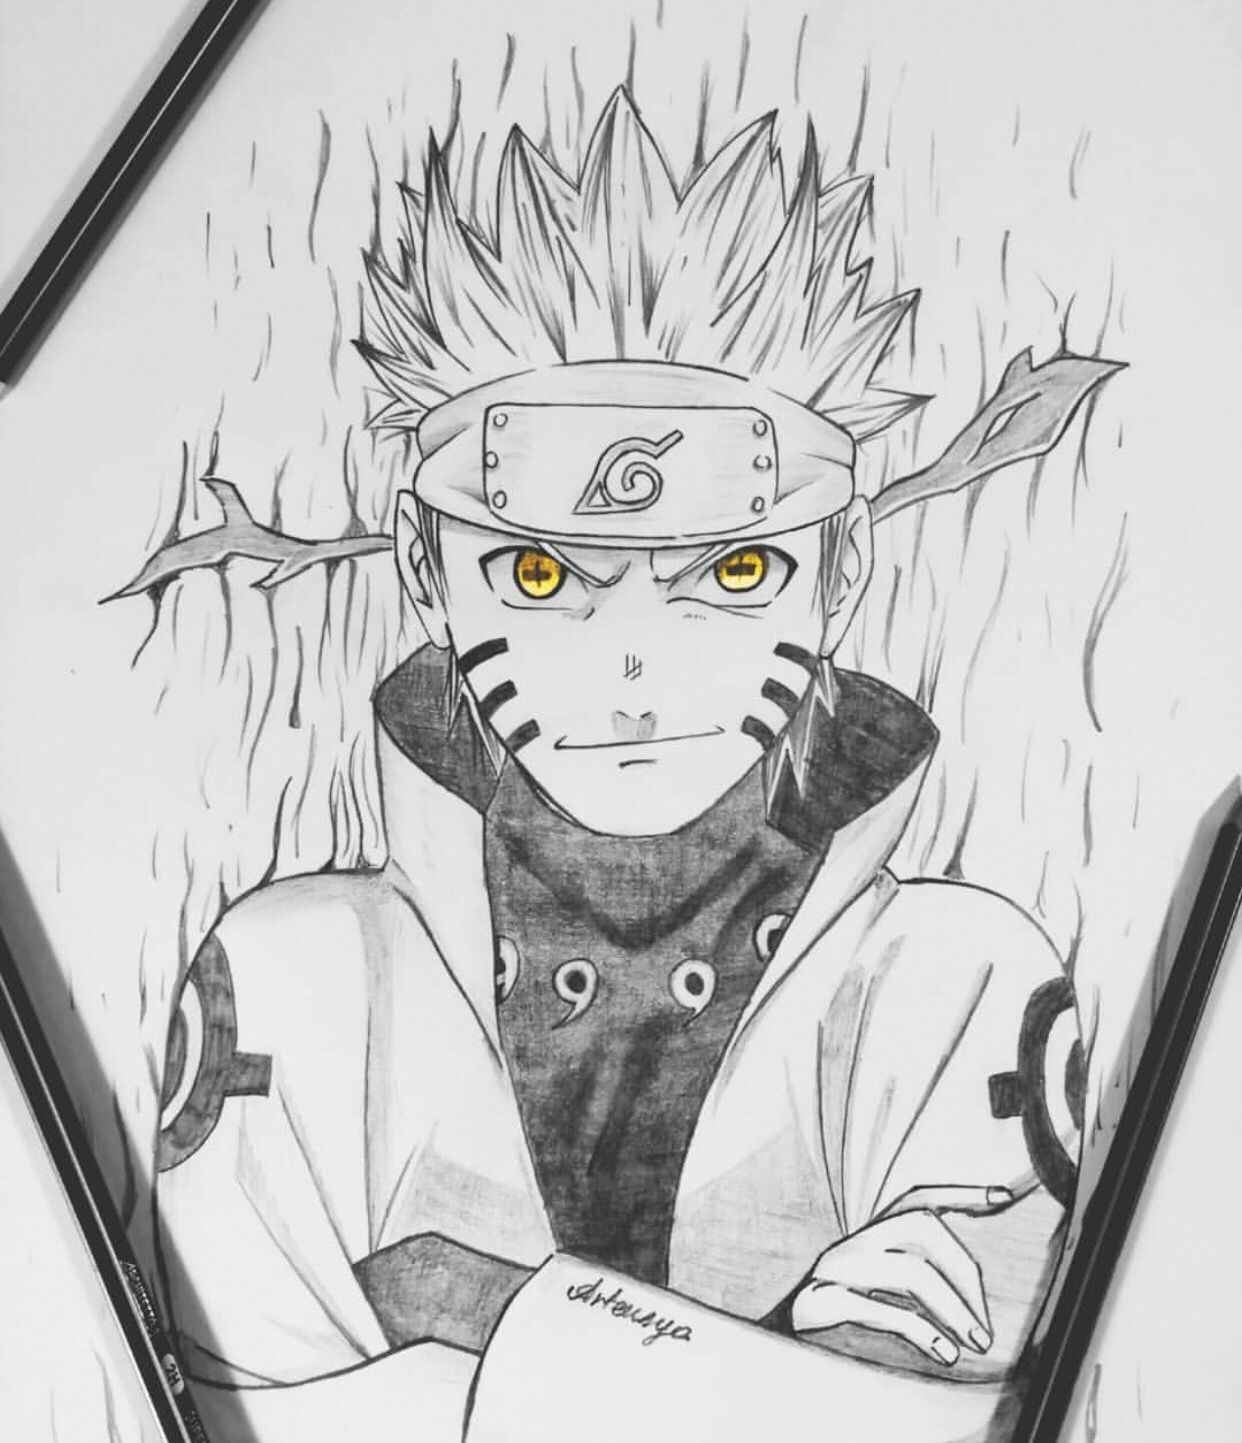 Anime Ignite Igniteartistscorner Artensya Check It Out Here Anime Ignite This Amazing Artist Creates Som Naruto Sketch Drawing Naruto Sketch Anime